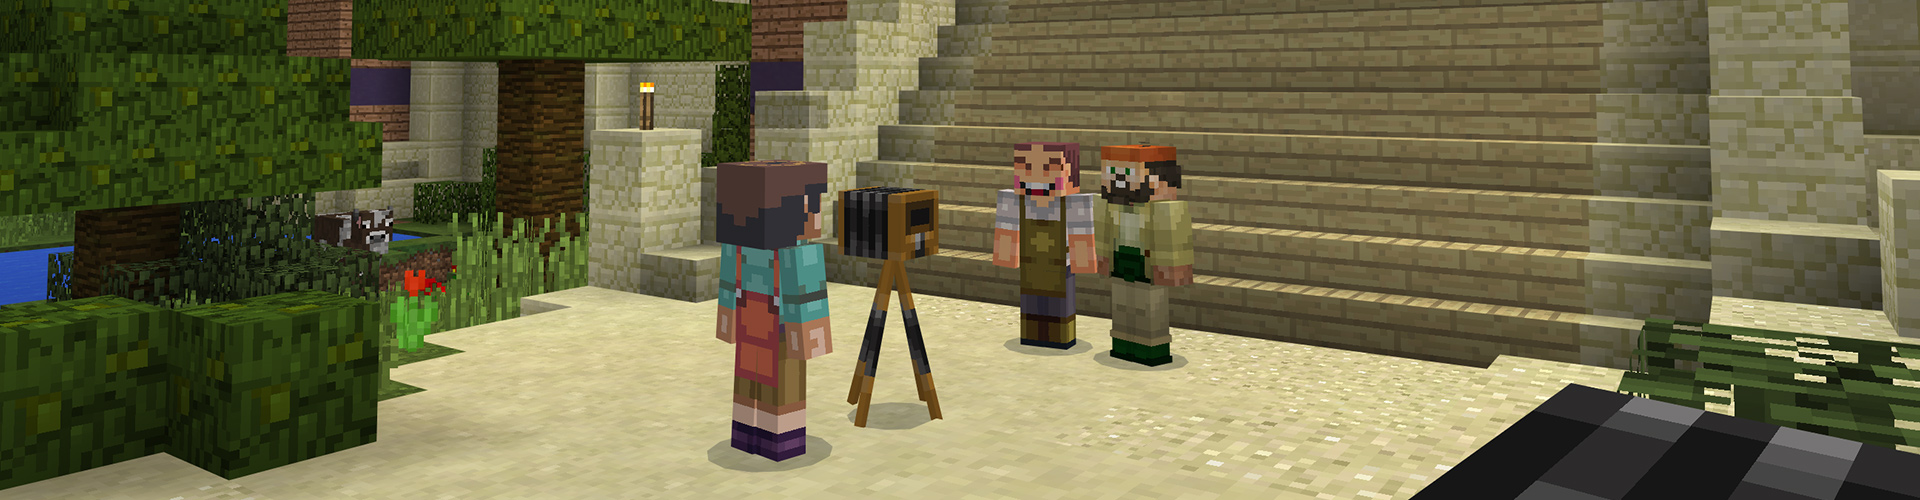 Minecraft game screenshot - characters using the camera taking a picture in a world setting.